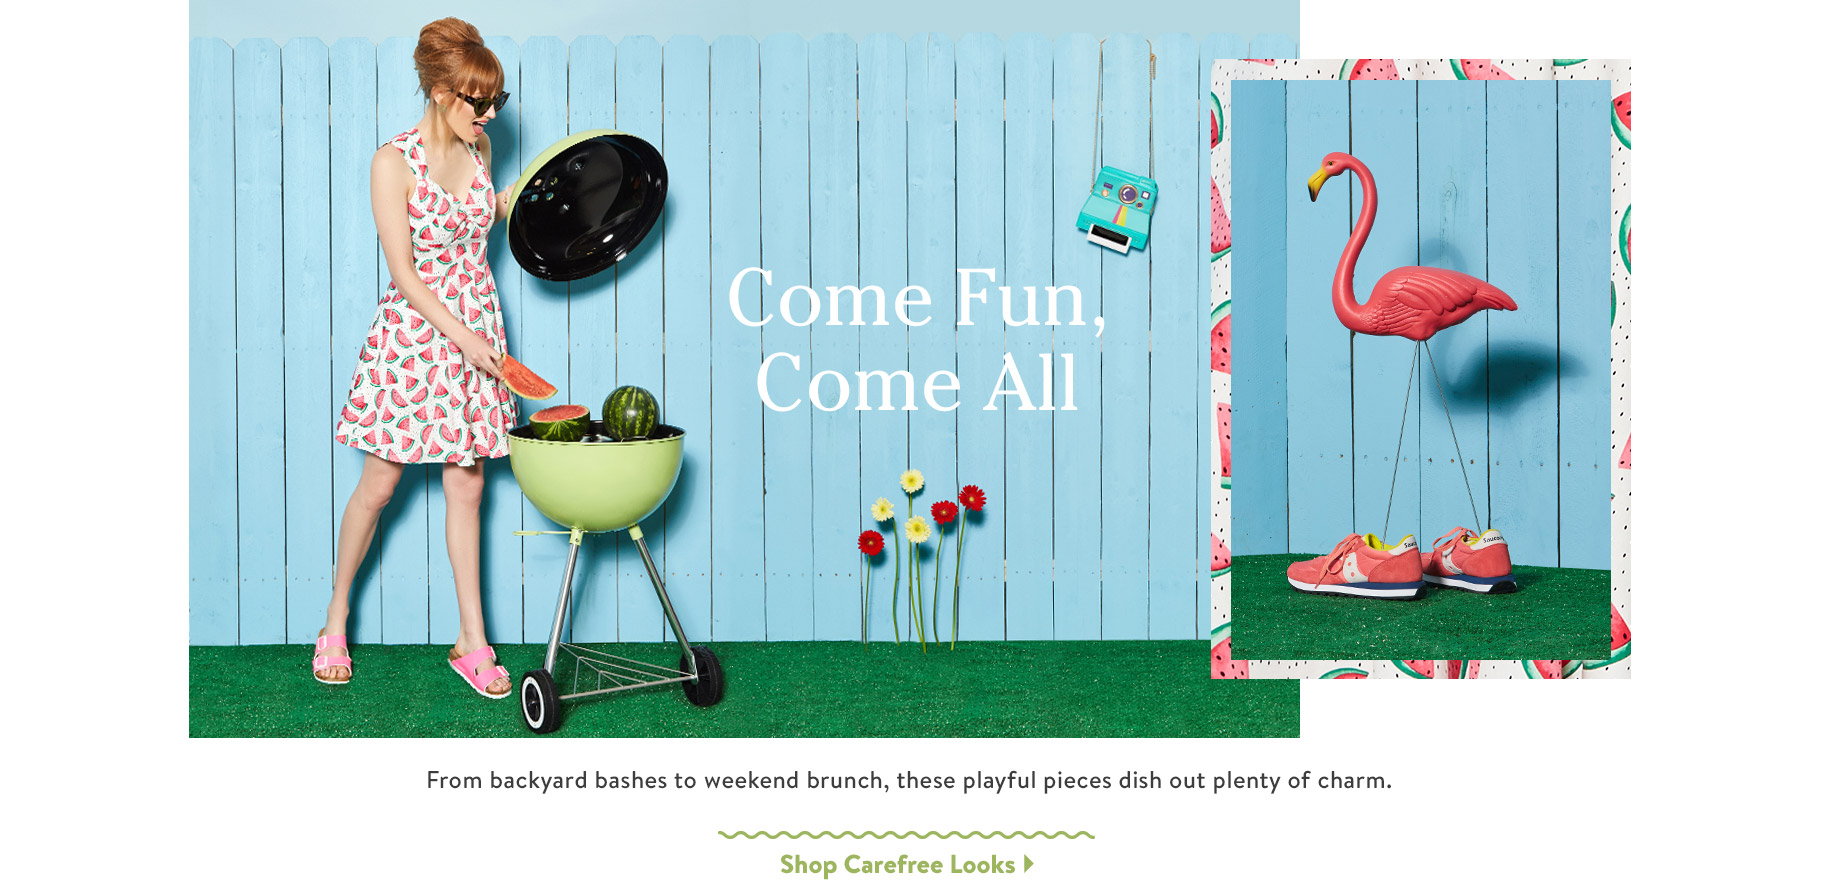 Come Fun, Come All. From backyard bashes to weekend brunch, these playful pieces dish out plenty of charm. Shop Carefree Looks.